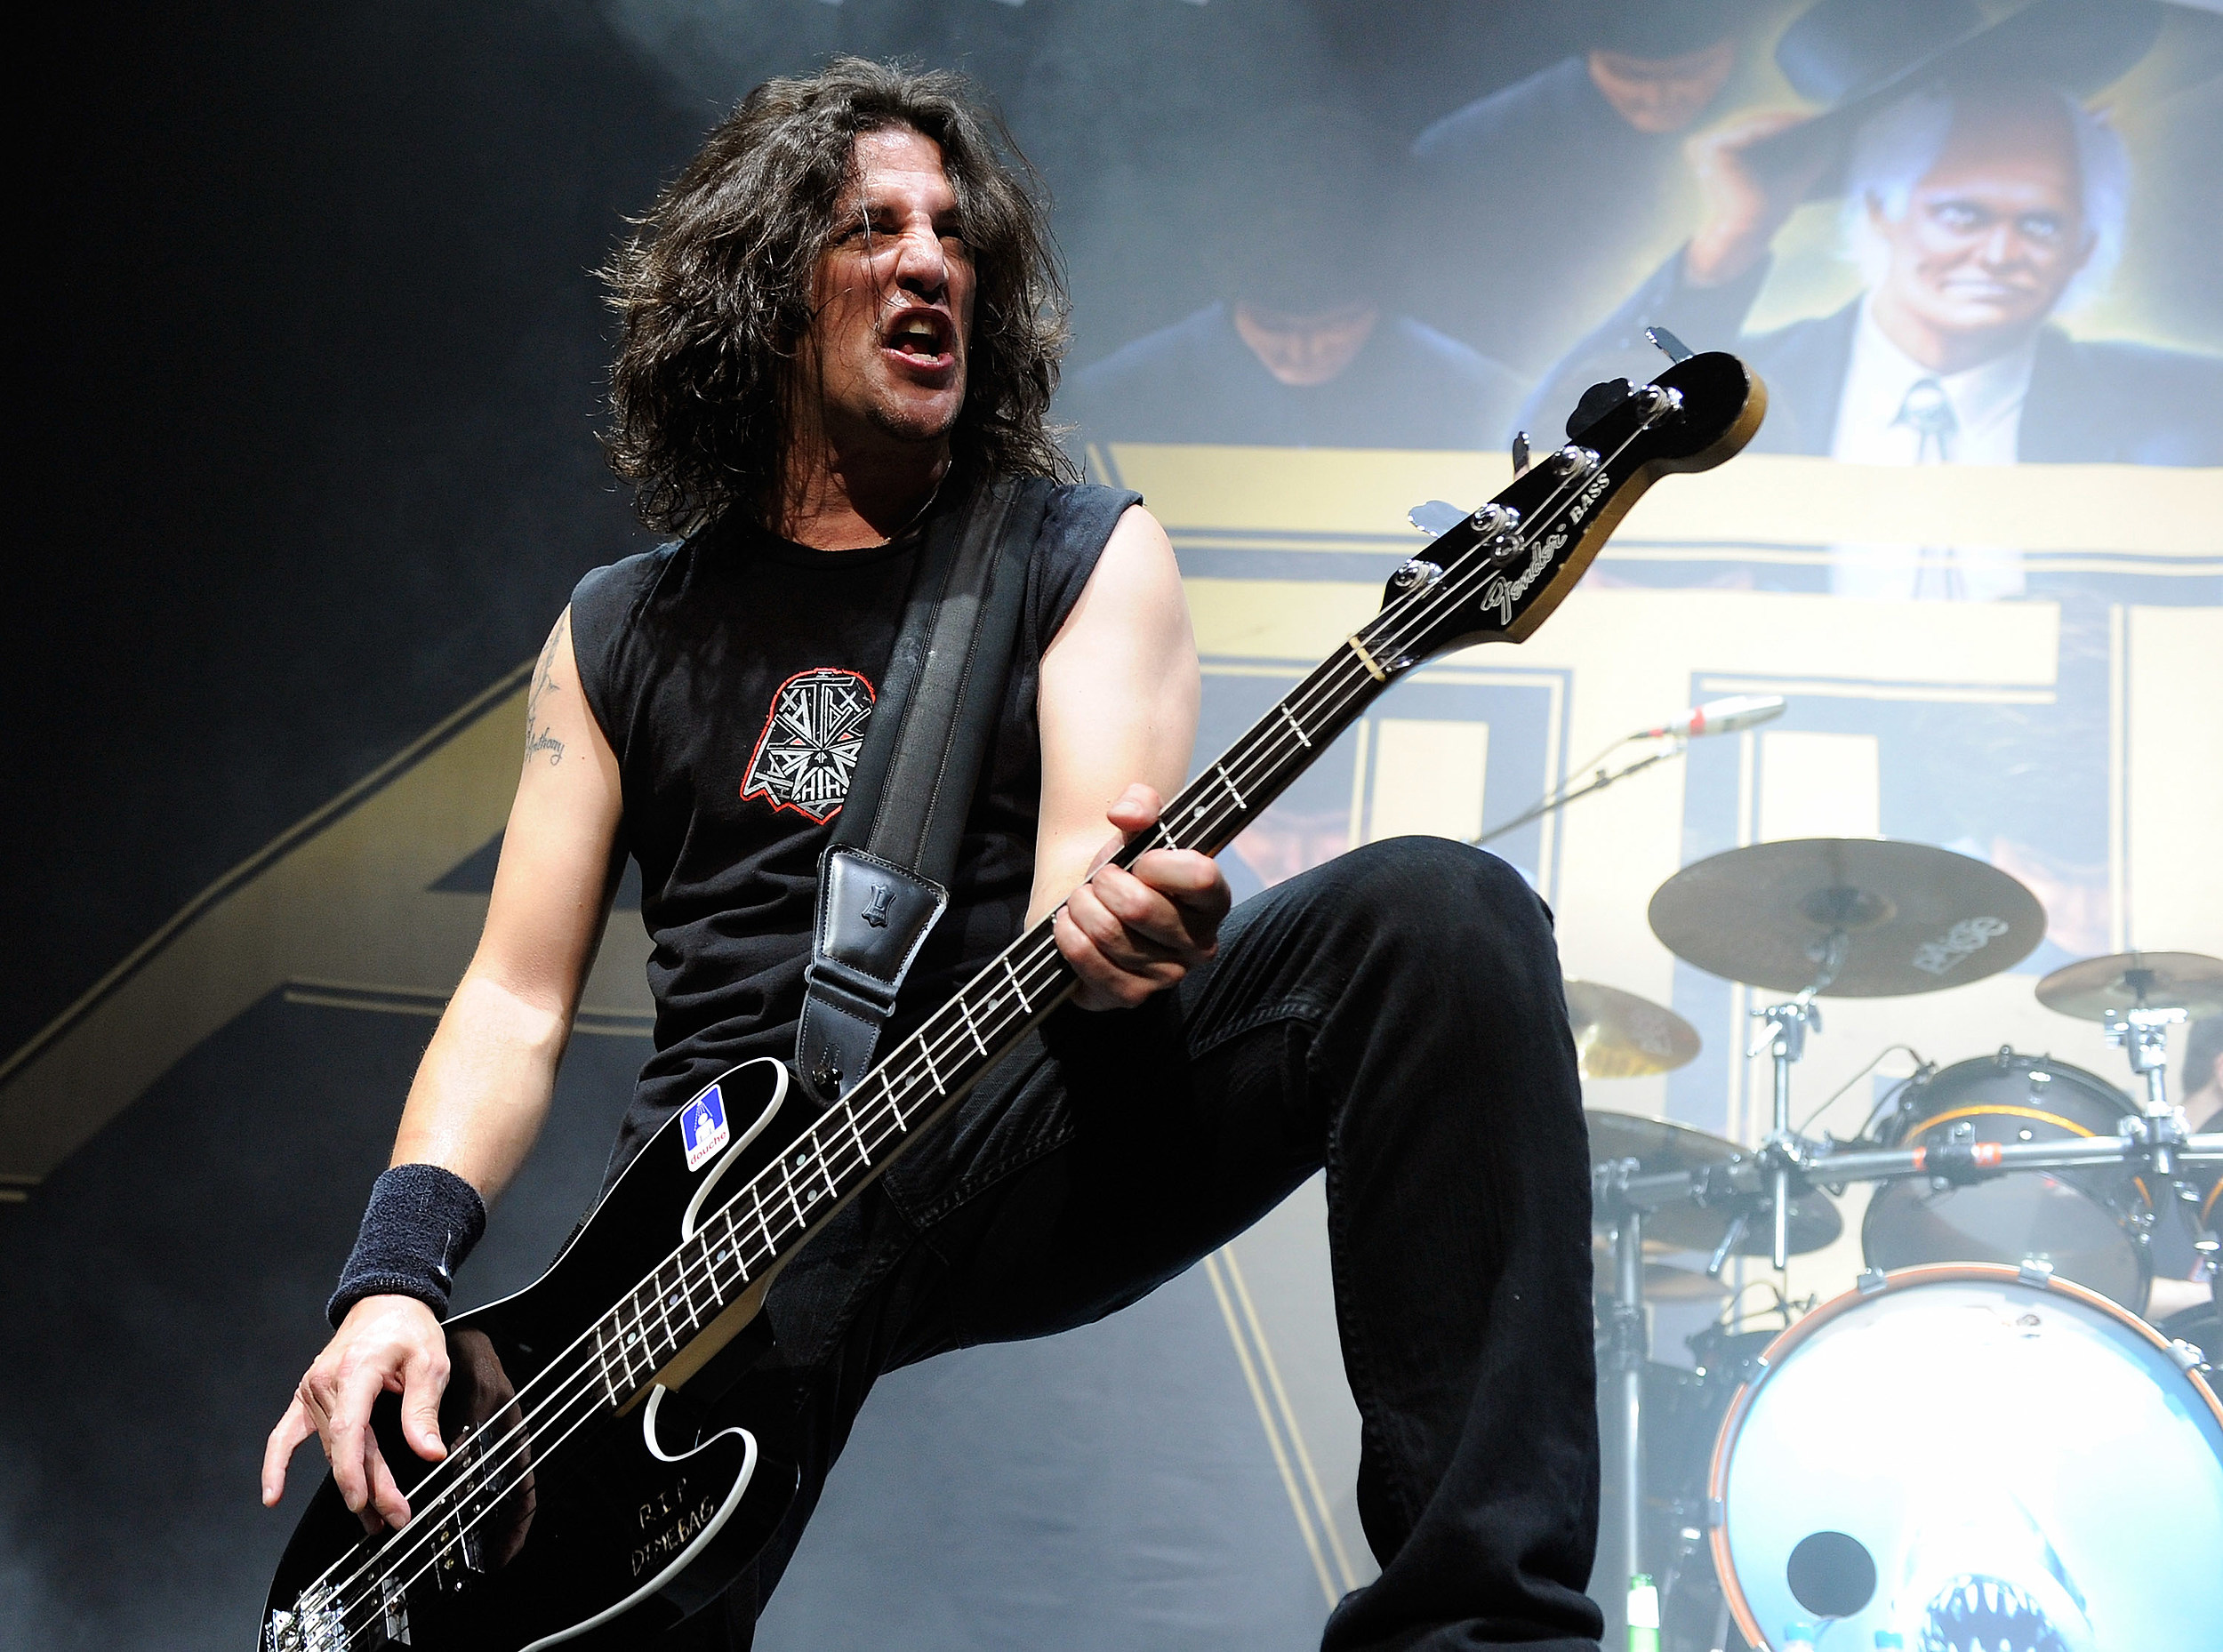 Frank Bello of Anthrax teams up with Dave Ellefson of Megadeth